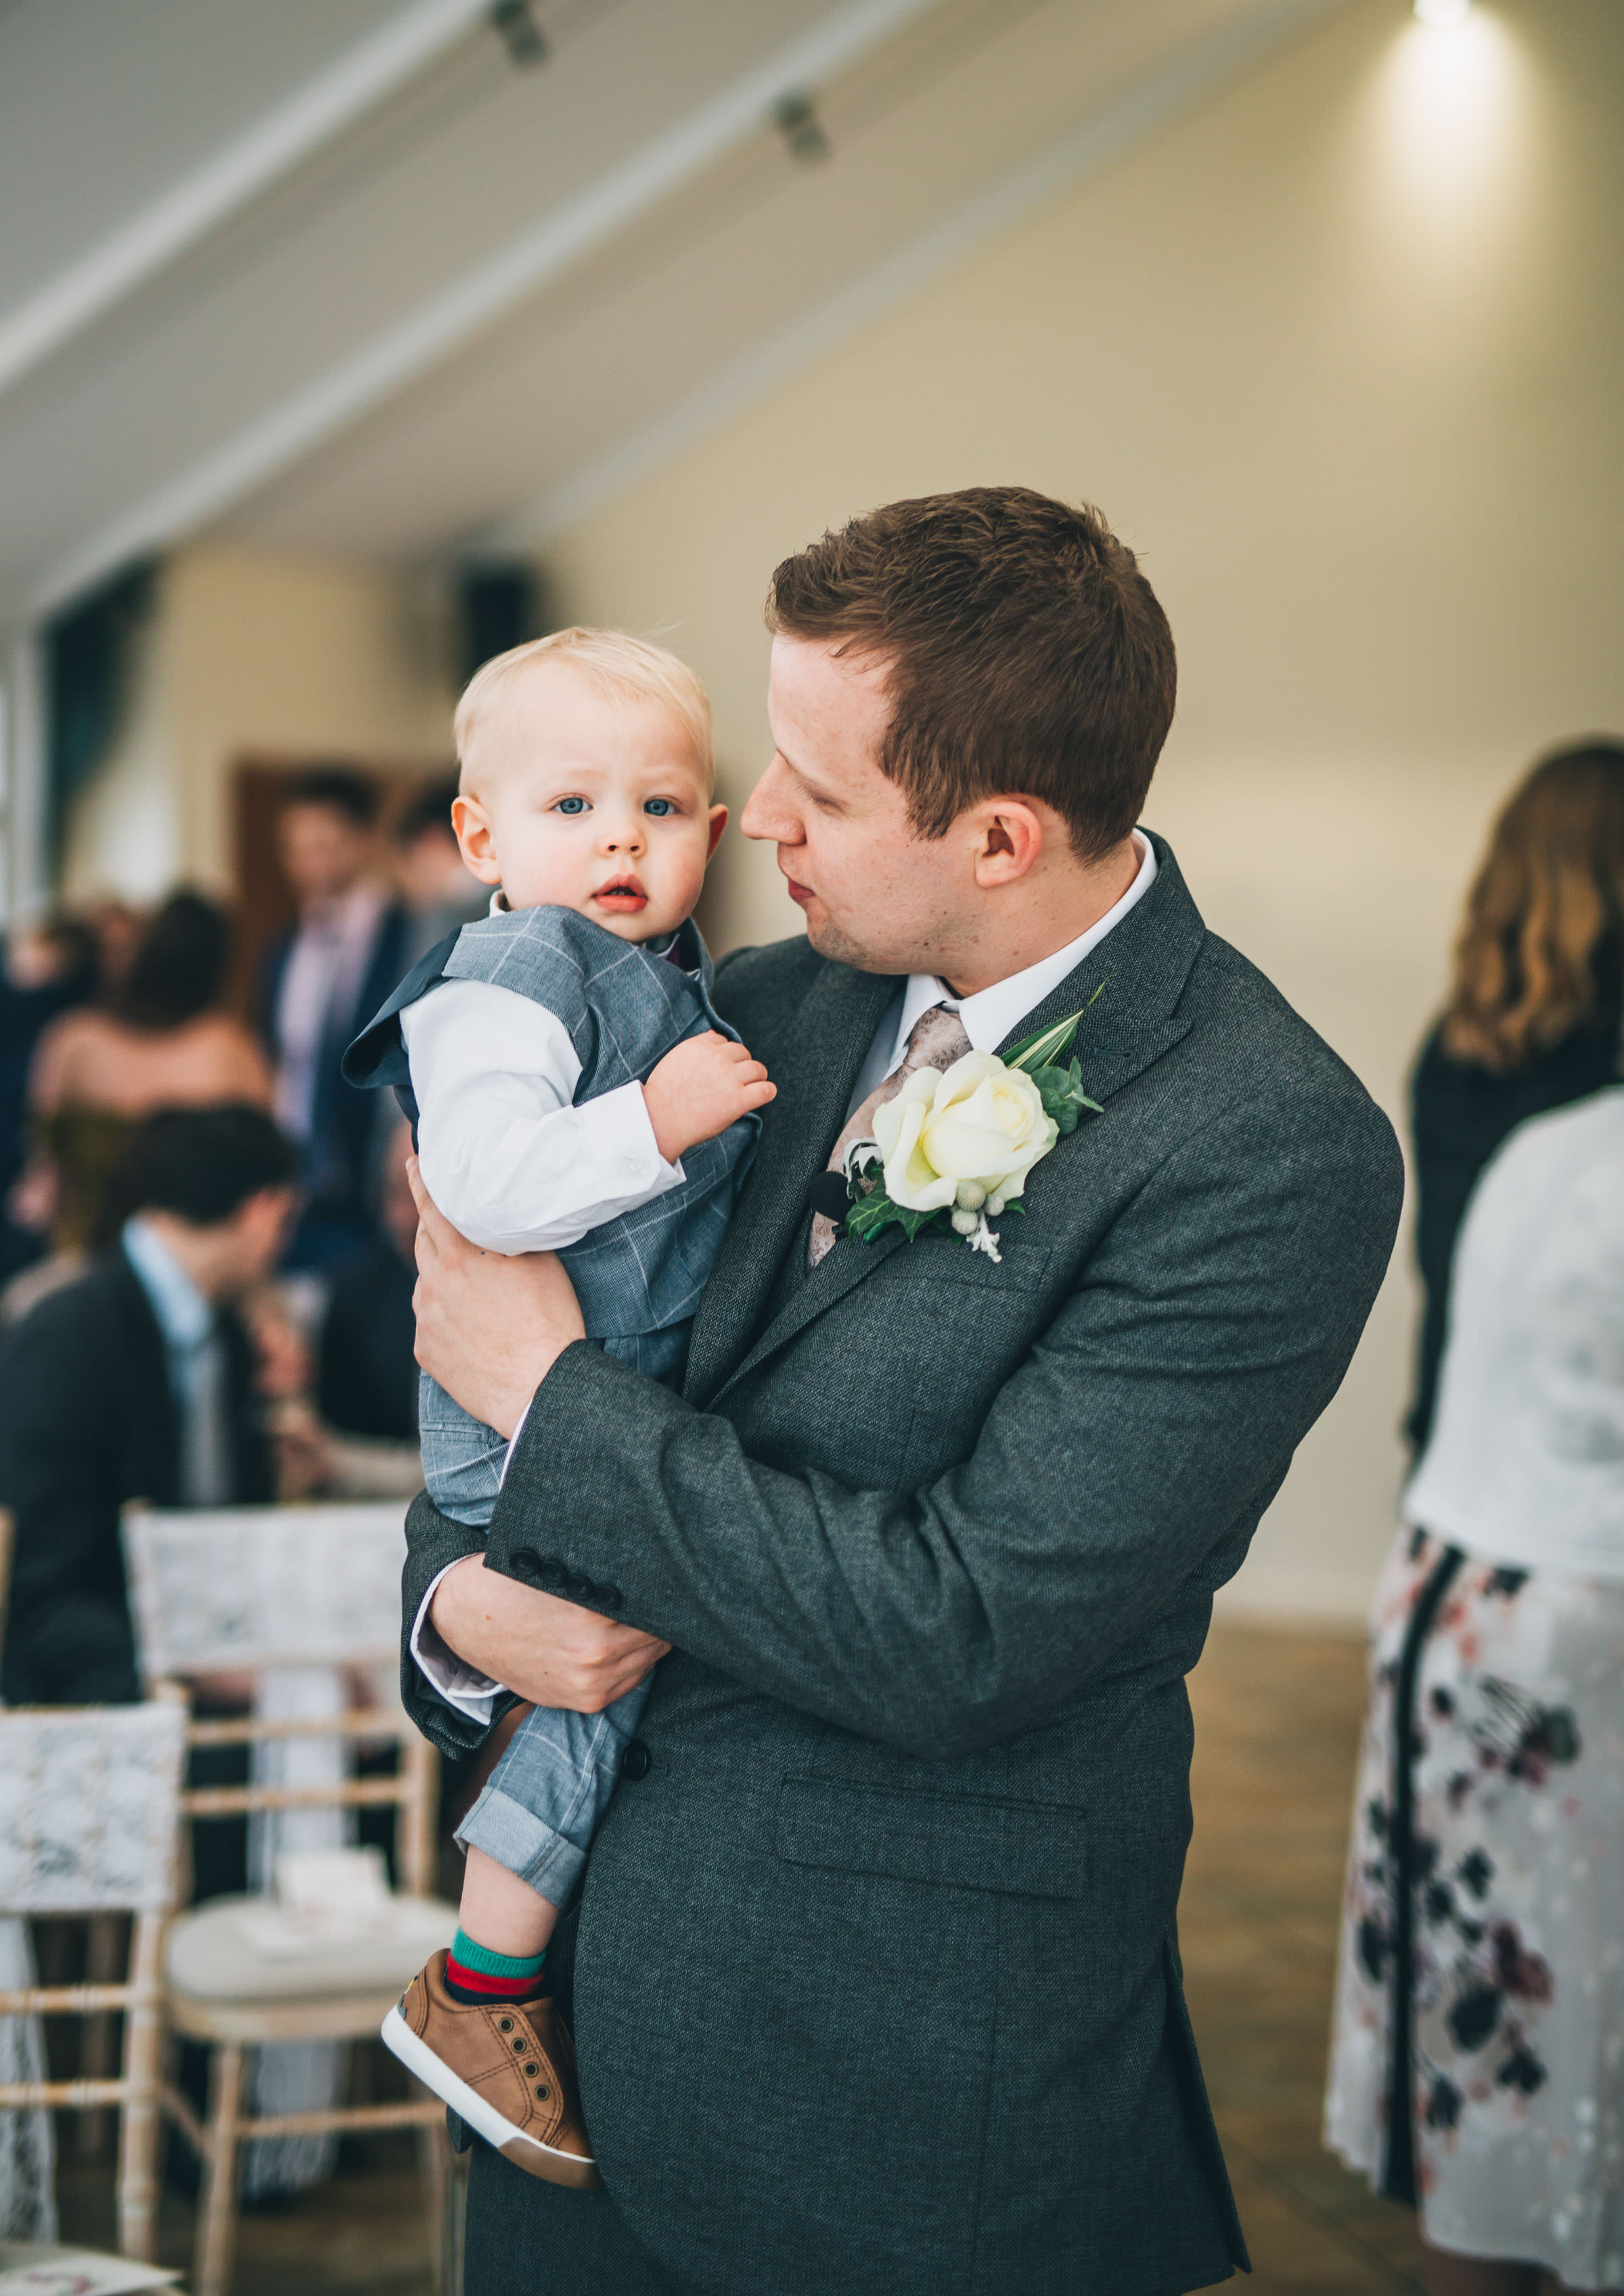 Groom and son - Combermere Abbey